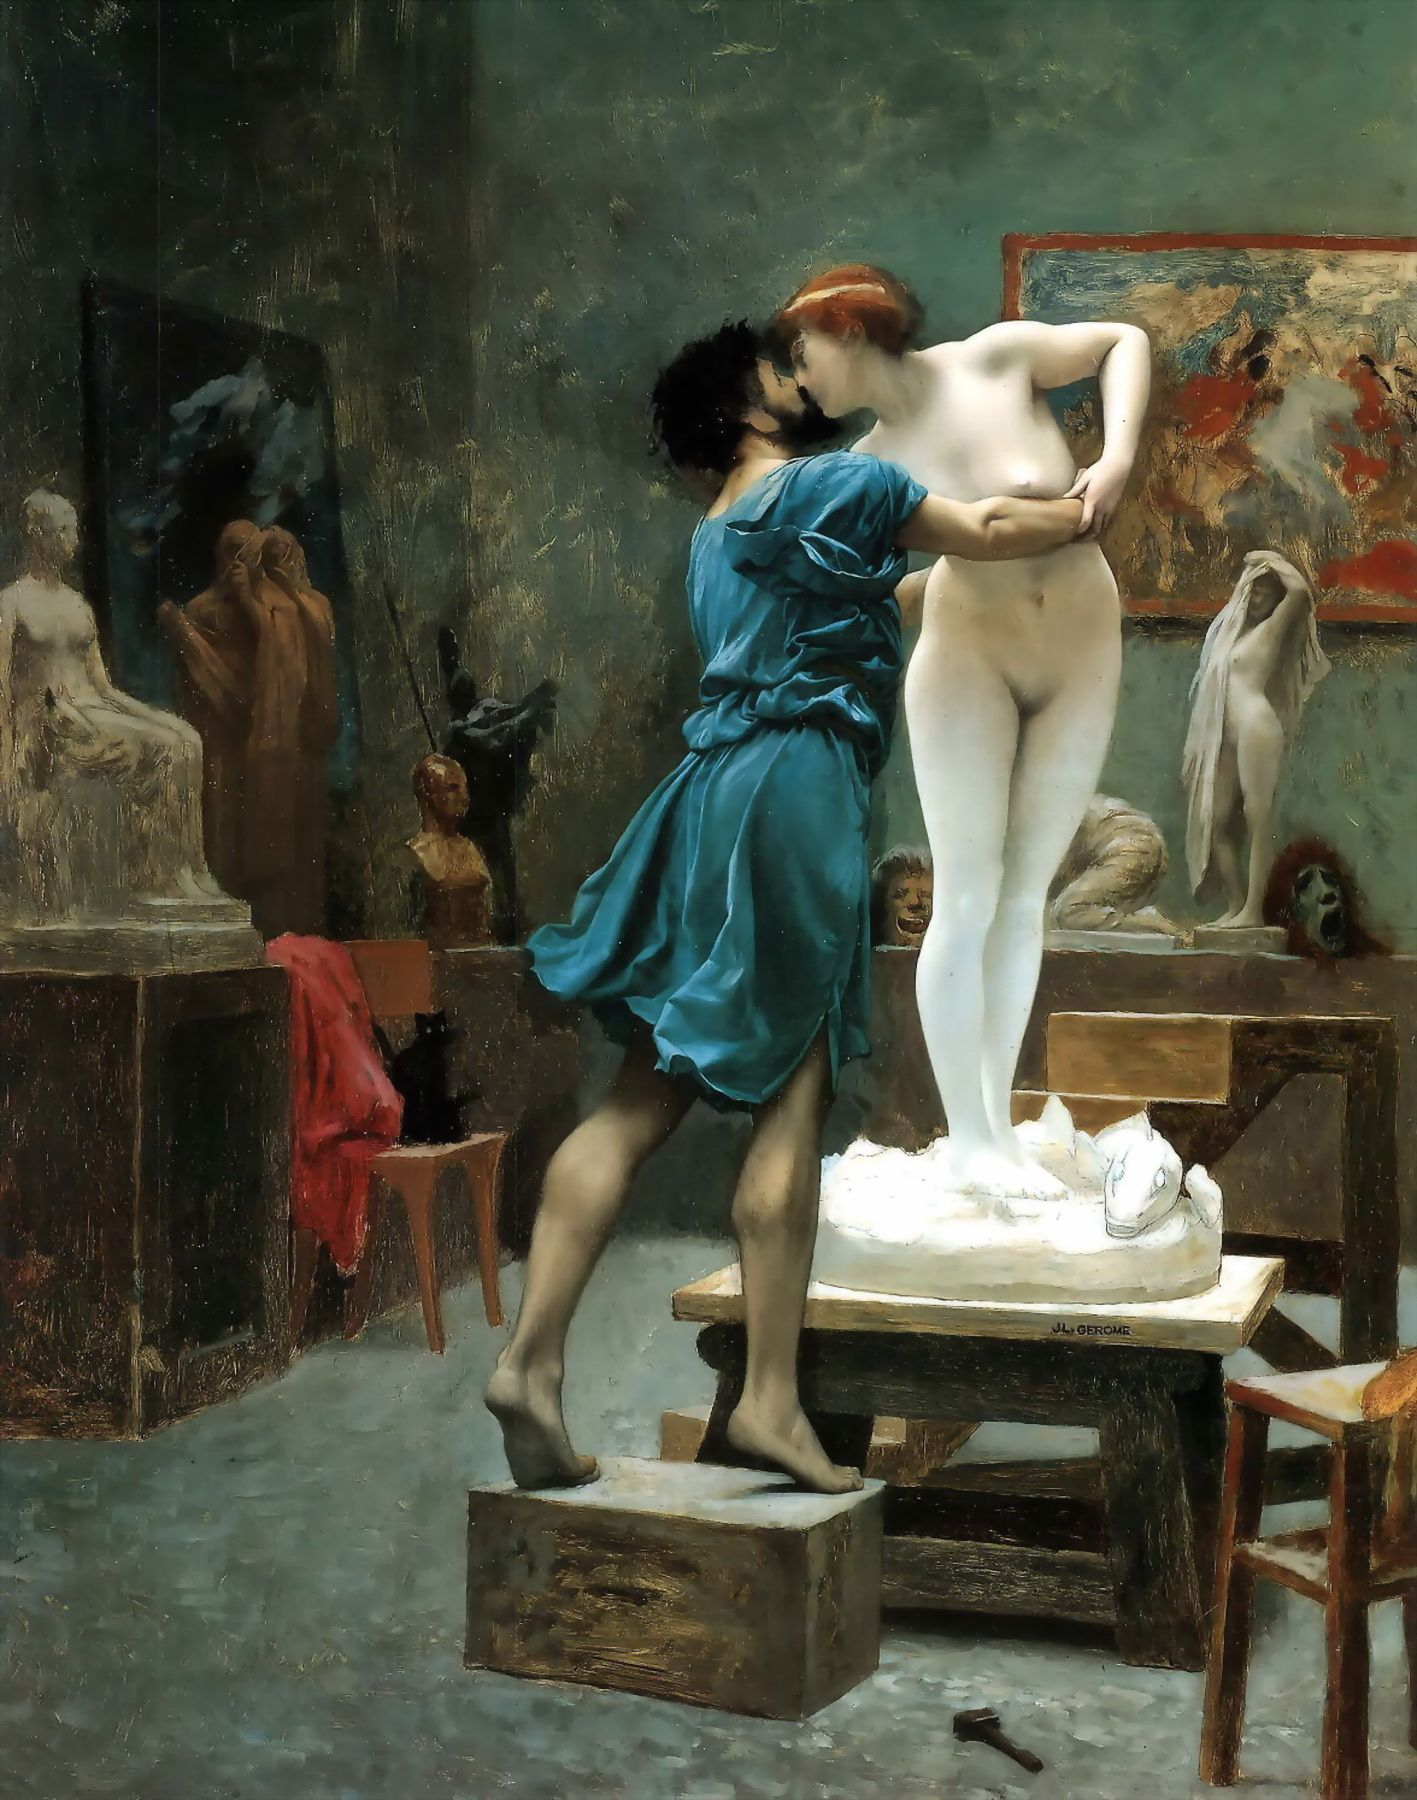 jean l eacute on g eacute r ocirc me pyg on and galatea version ii large hand painted reproduction of pyg on and galatea study 1890 painting this masterpiece was painted originally by jean leon gerome